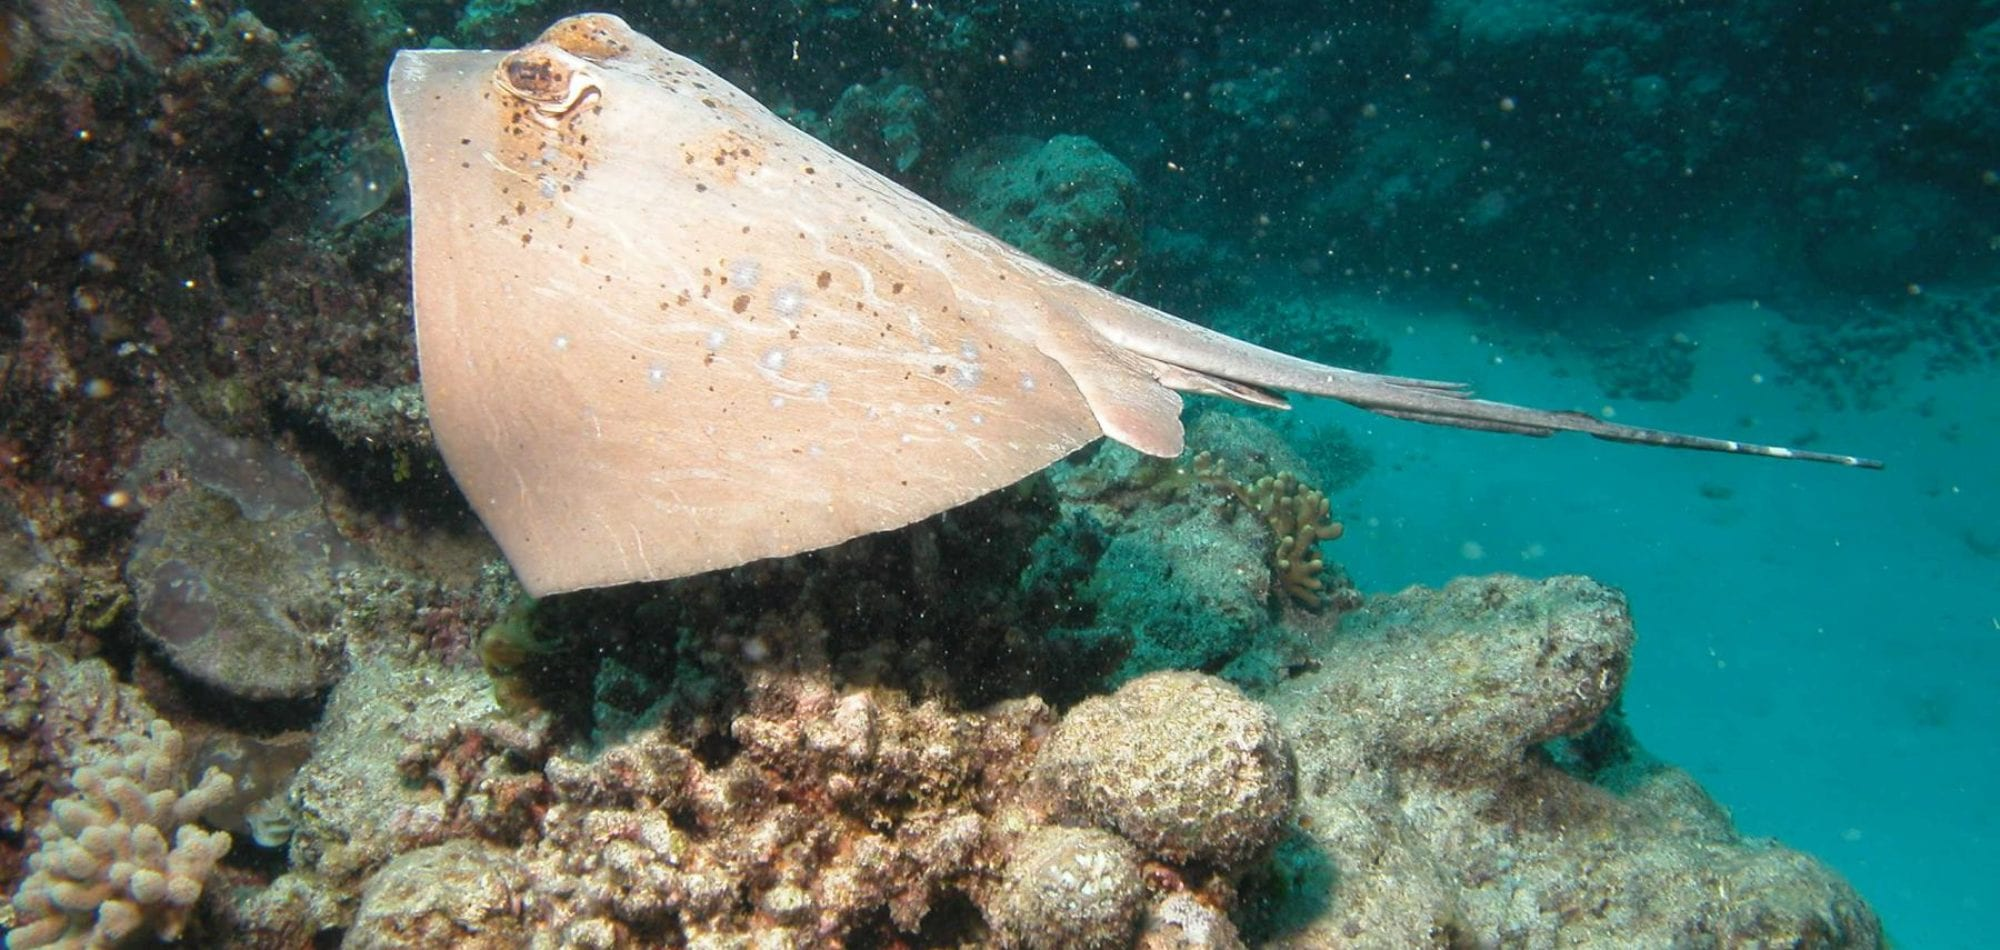 Cairns dive certification - Blue spotted lagoon ray on the Great Barrier Reef